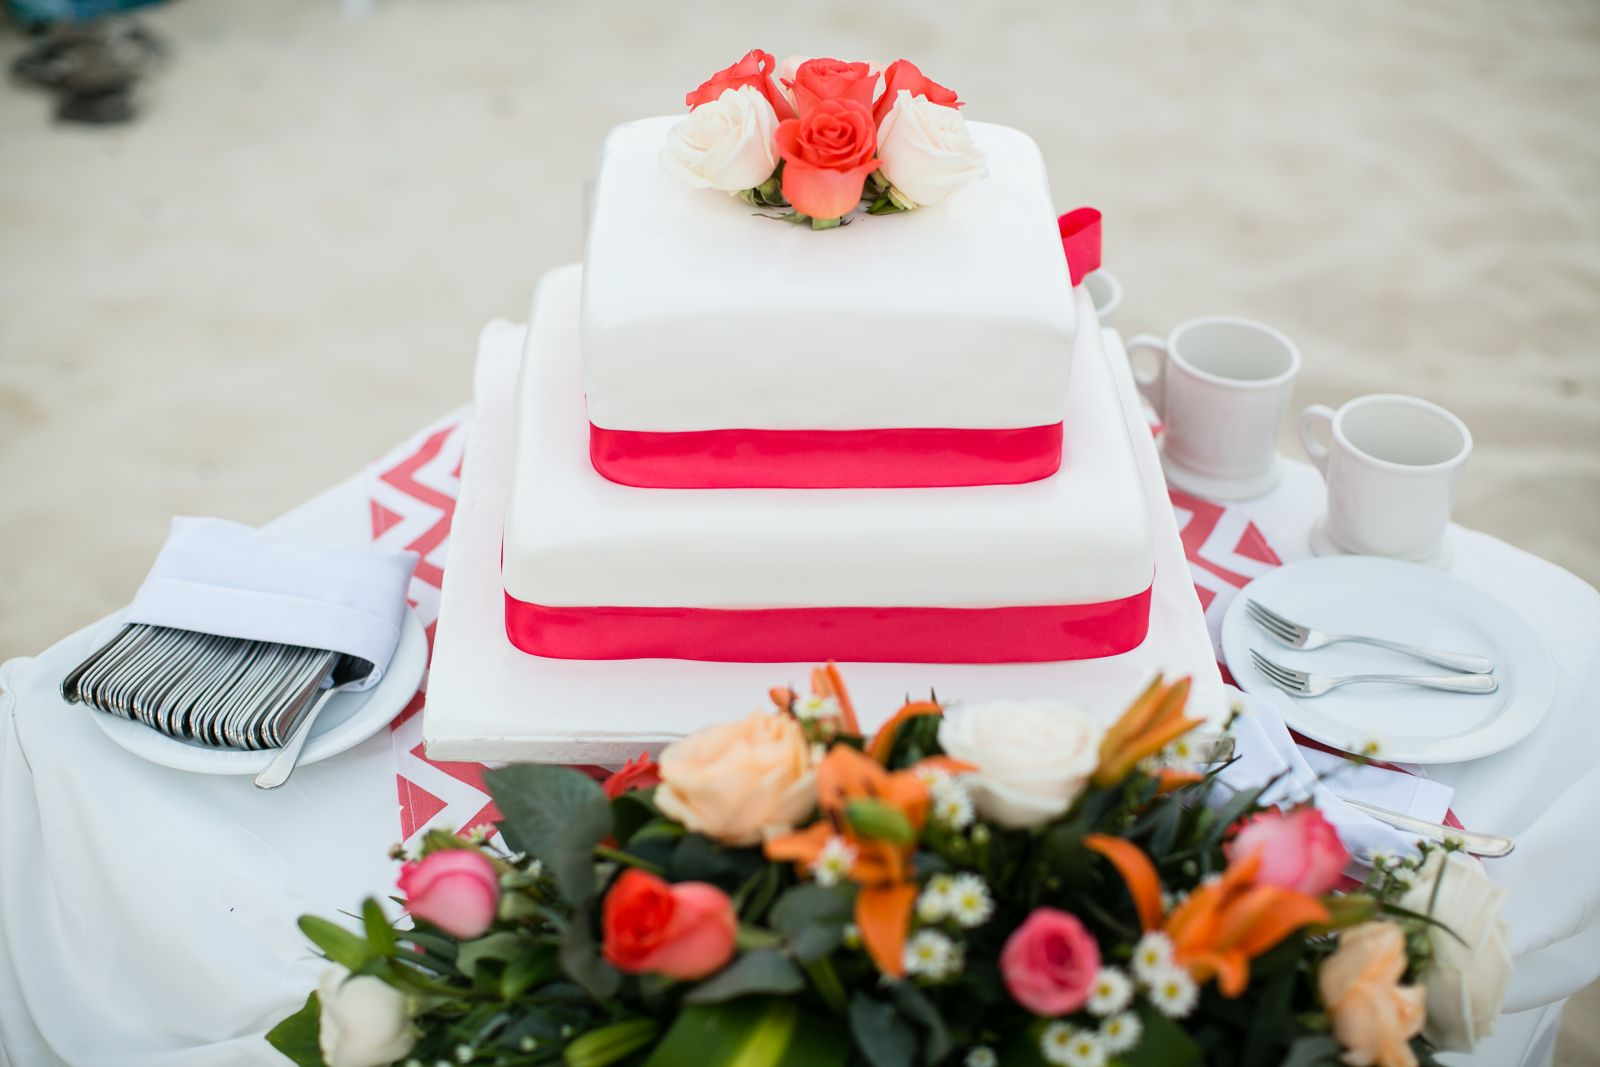 wedding cake made by The Royal, was an upgraded size that came with our wedding package. I was able to request the coral ribbon and coral roses for the top. The long floral arrangement on the table was a free surprise addition made by The Royal and put ou